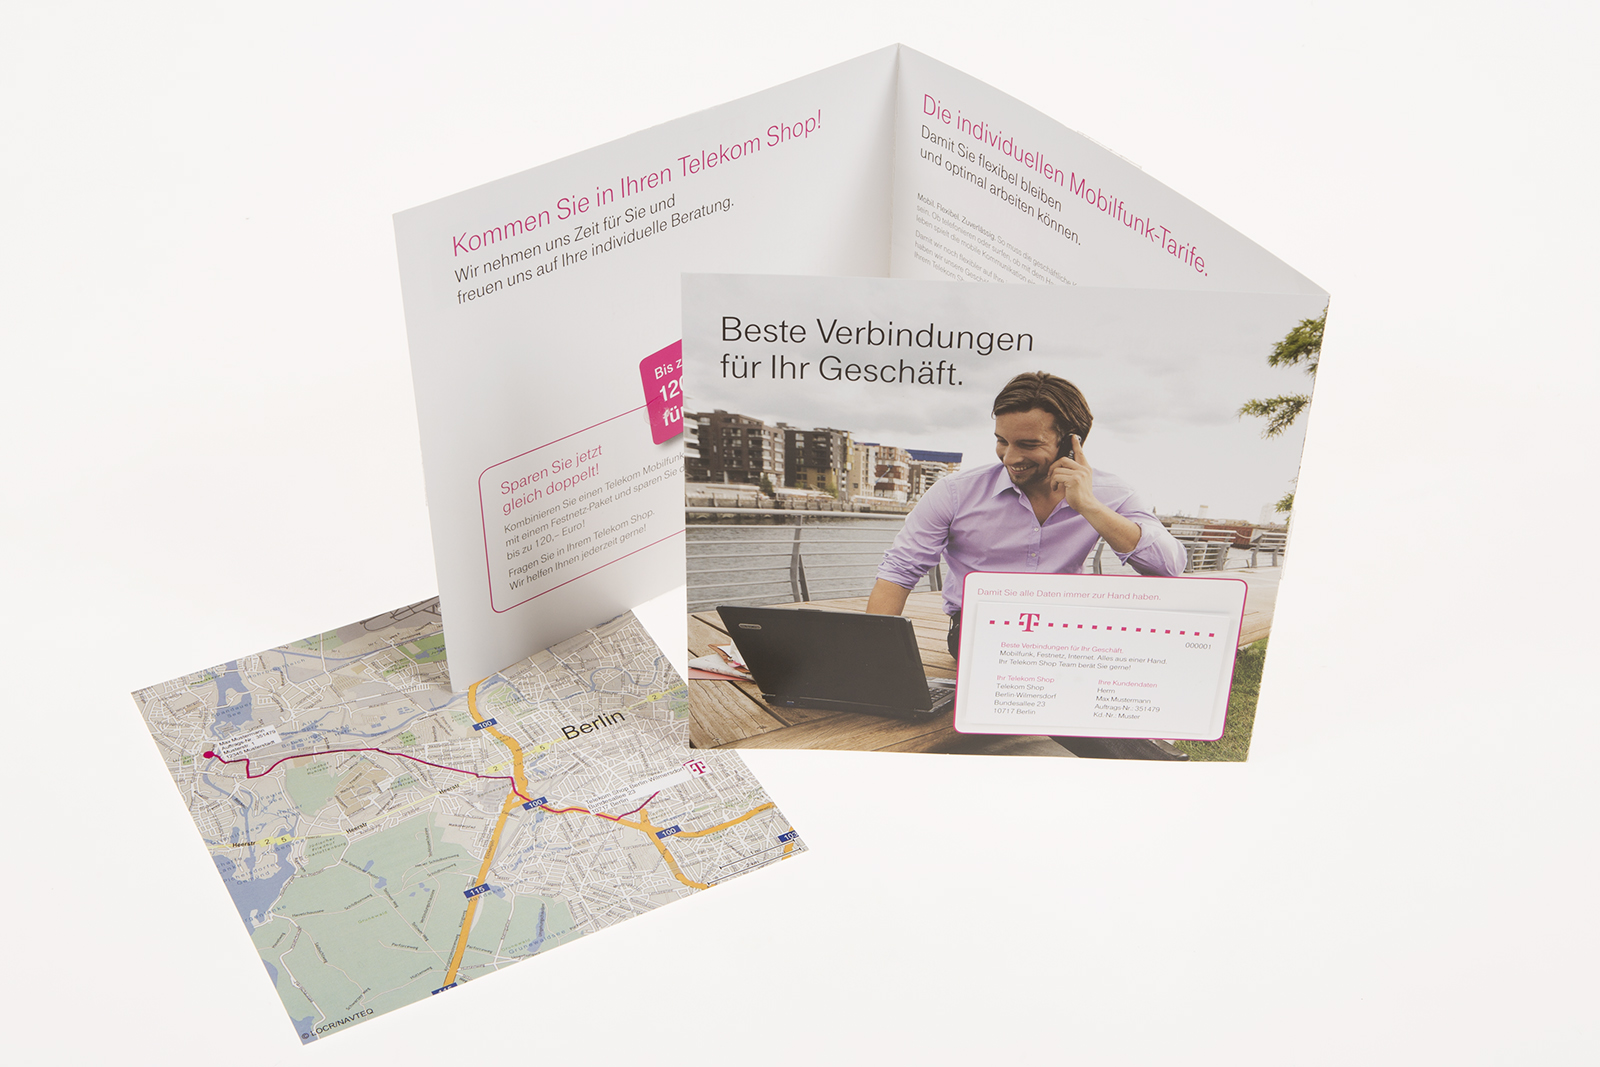 Case Study Telekom Shops Personalized locr Maps